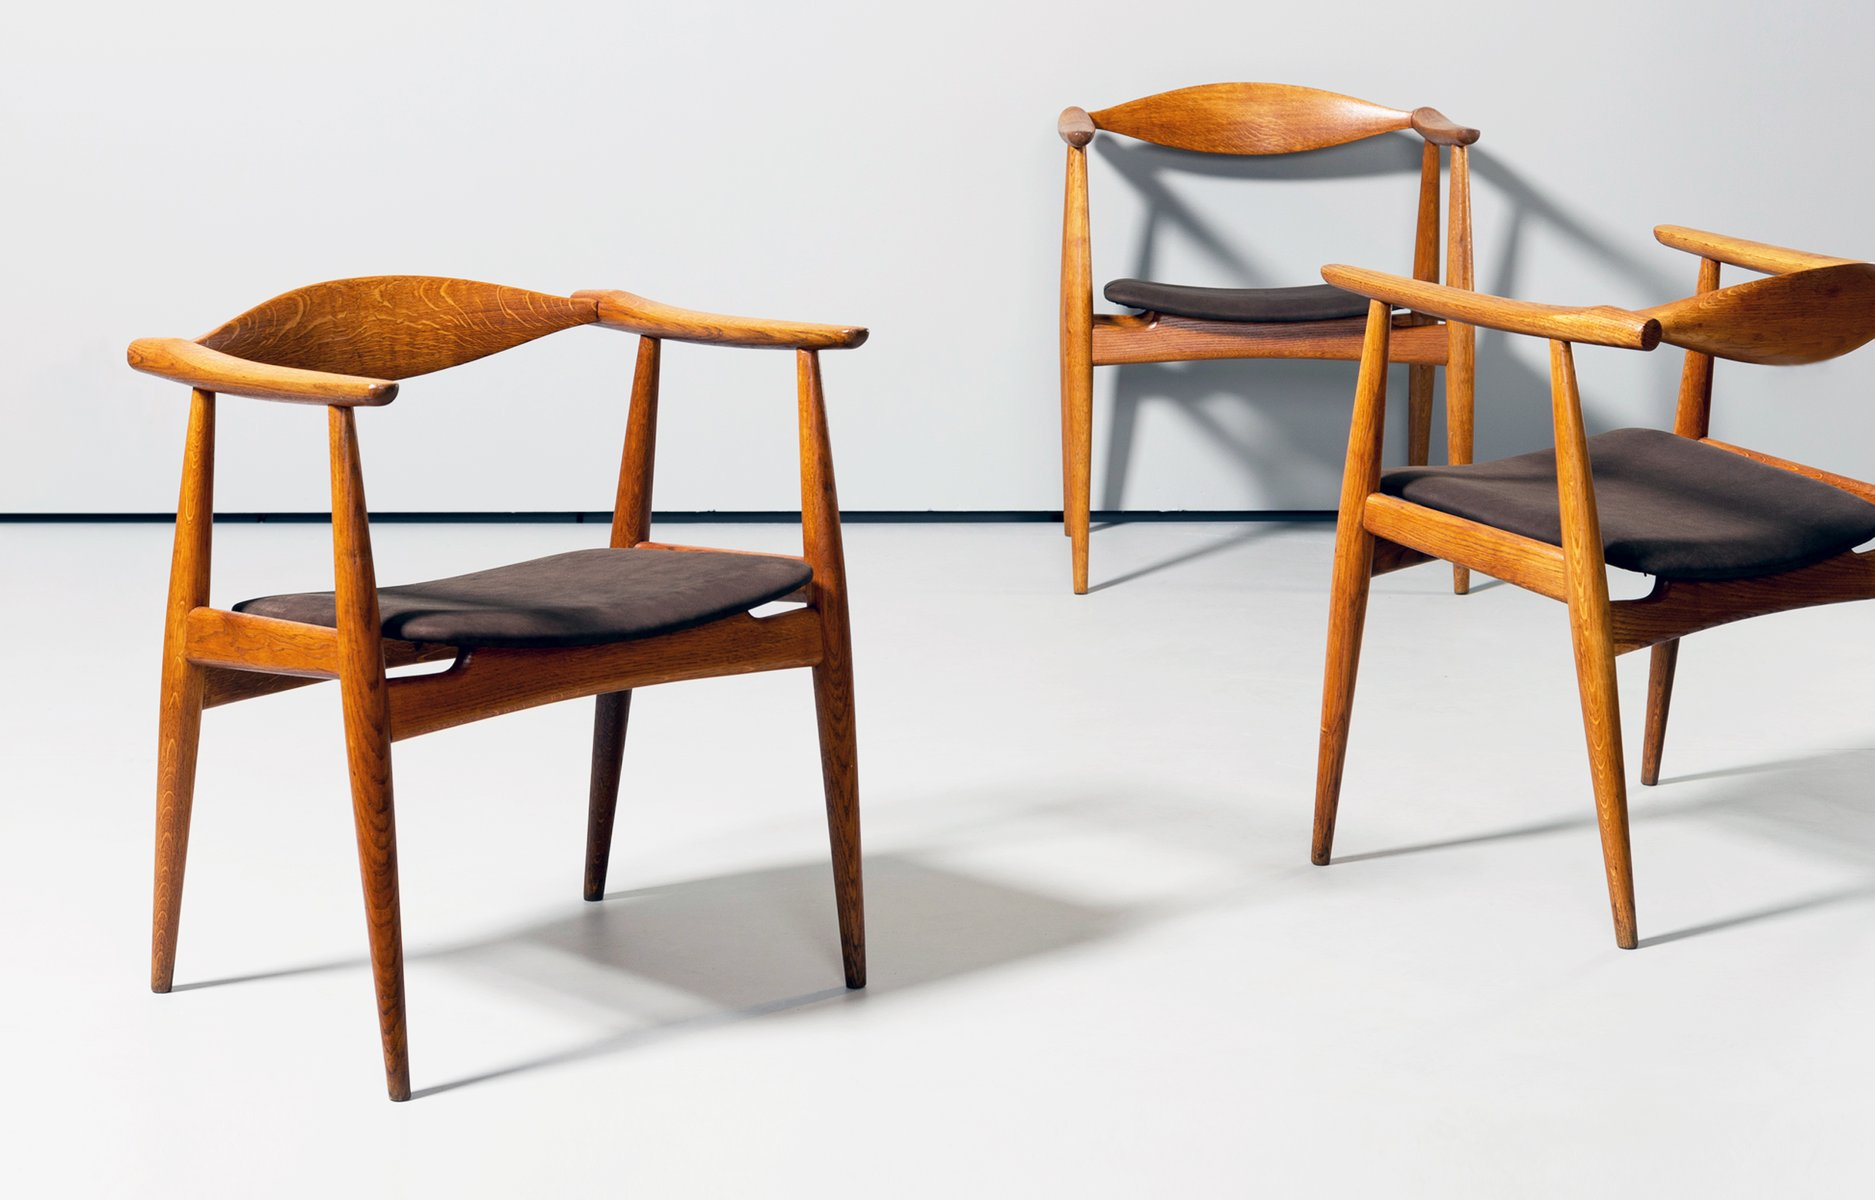 ch35 dining chairs by hans j wegner for carl hansen 1960s set of 6 for sale at pamono. Black Bedroom Furniture Sets. Home Design Ideas